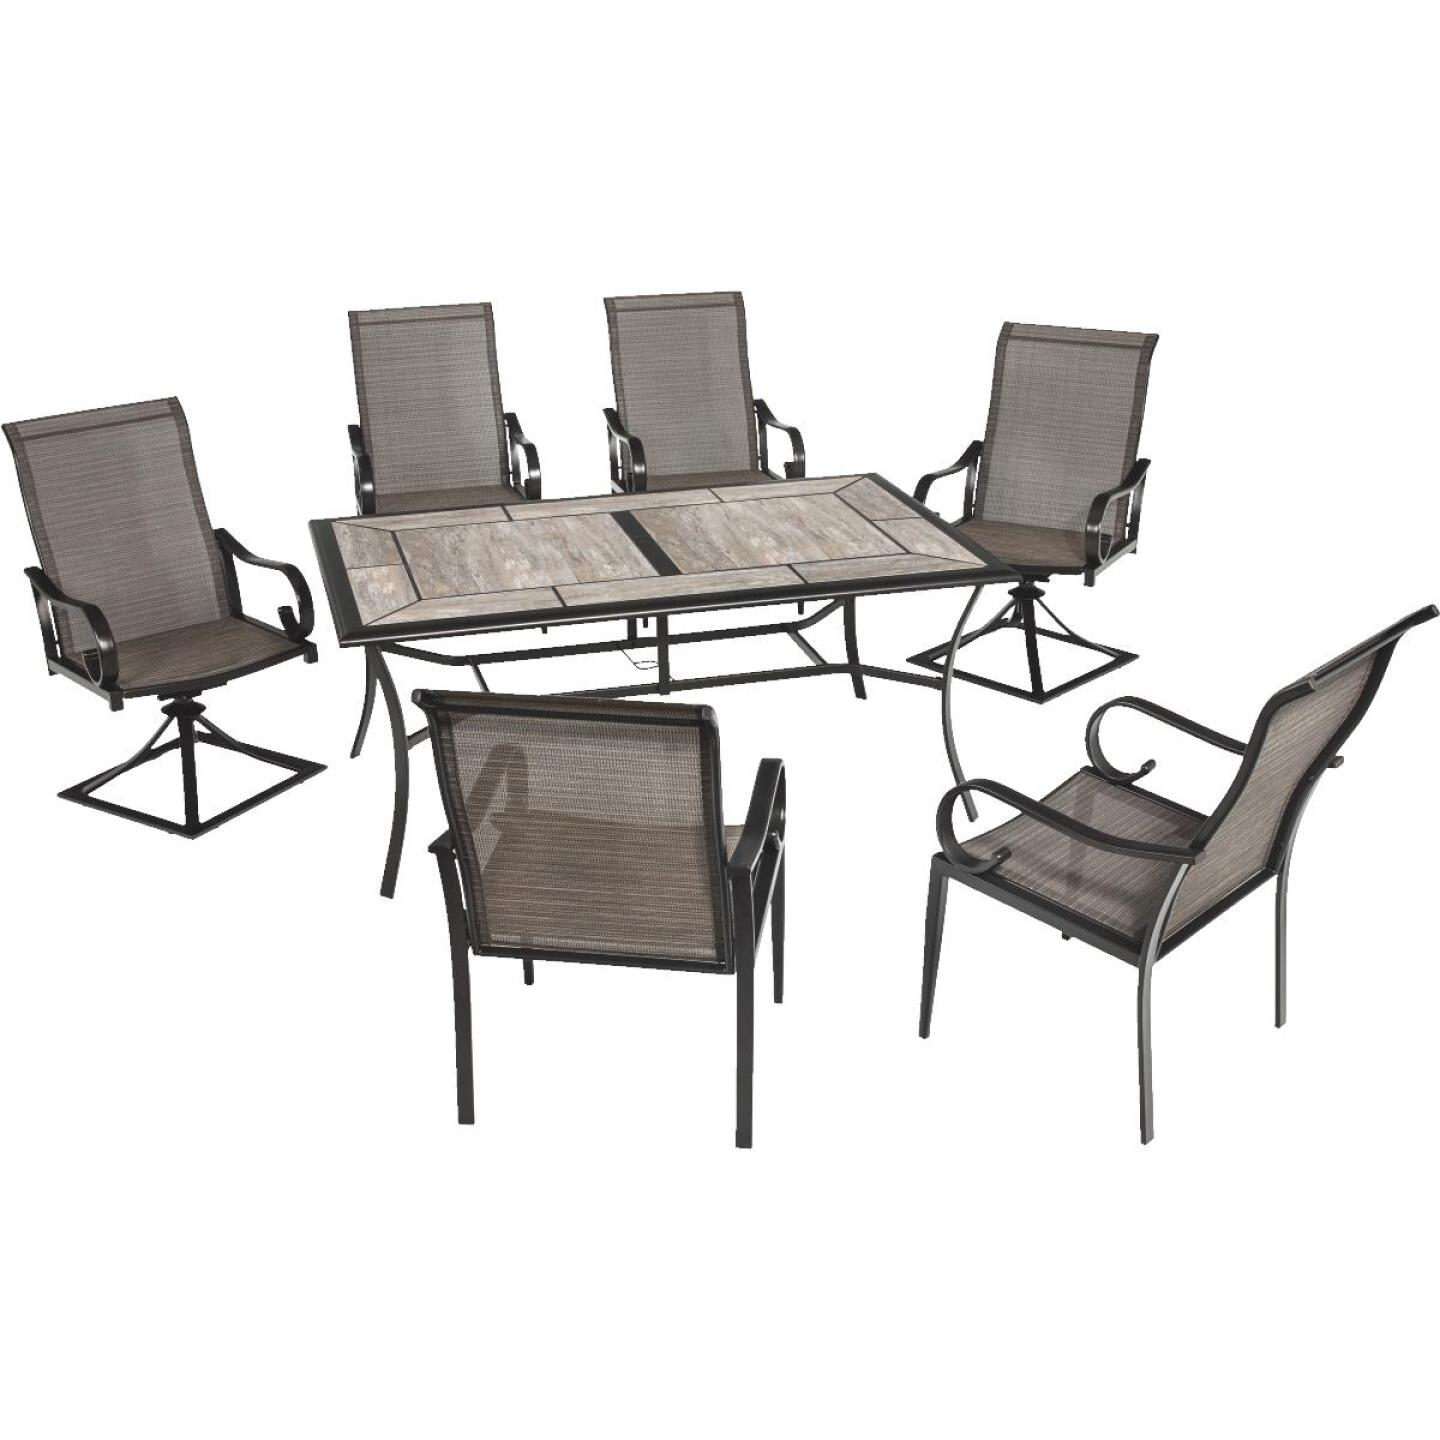 Outdoor Expressions Berkshire 7-Piece Dining Set Image 330